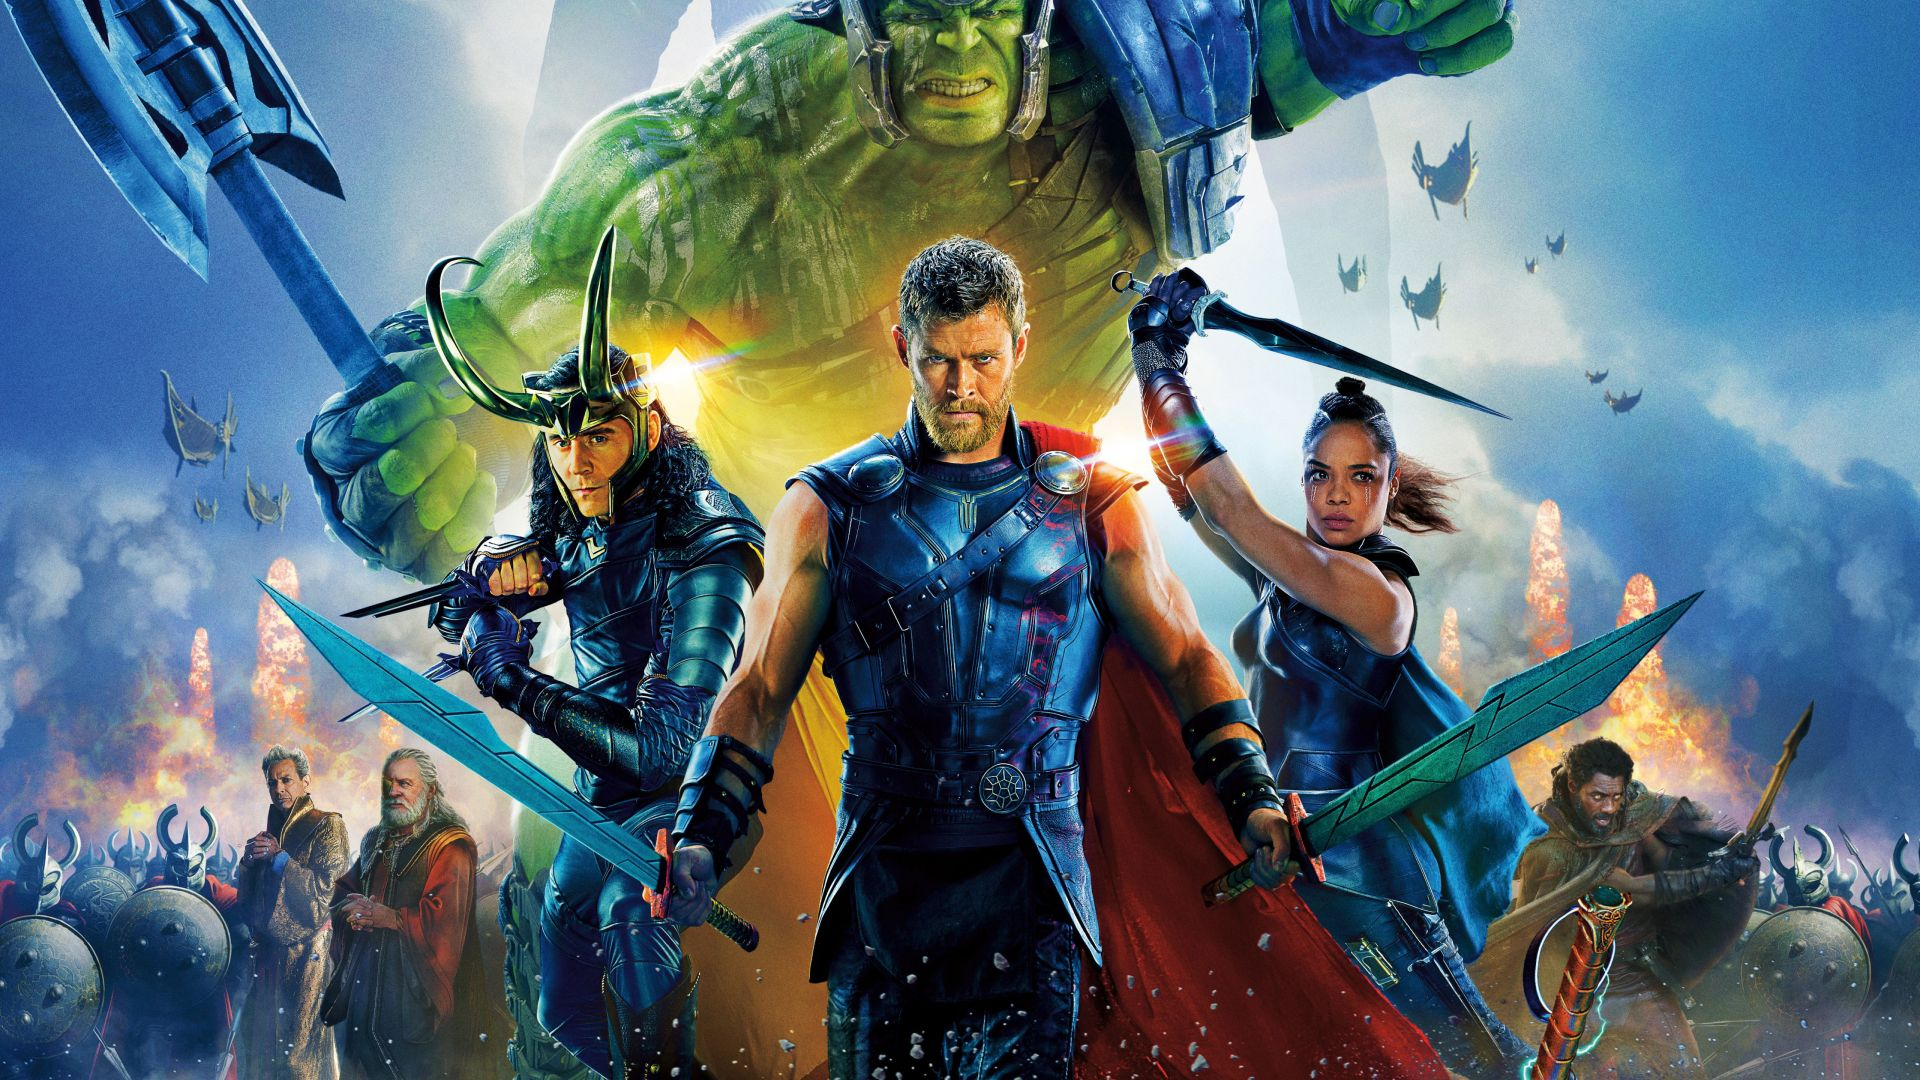 Thor: Ragnarok, Chris Hemsworth, Tom Hiddleston, Tessa Thompson, poster, 5k (horizontal)